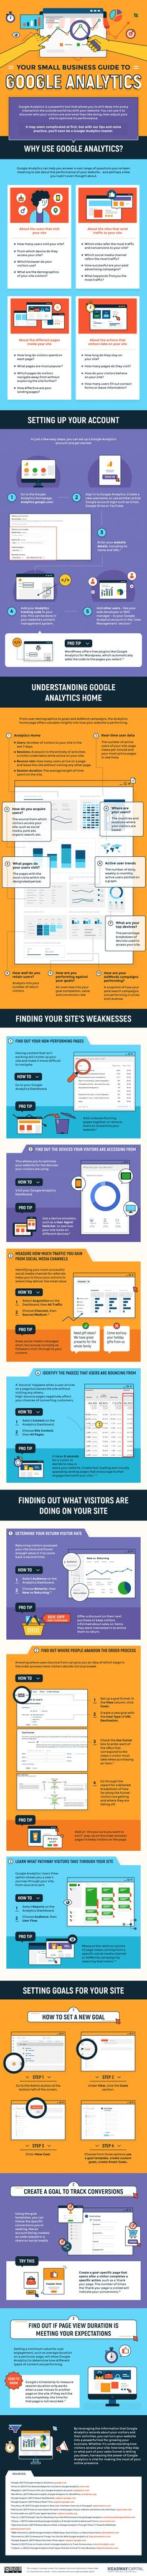 How to Use Google Analytics to Improve Your Website & Marketing Strategy [Infographic] | Social Media Today